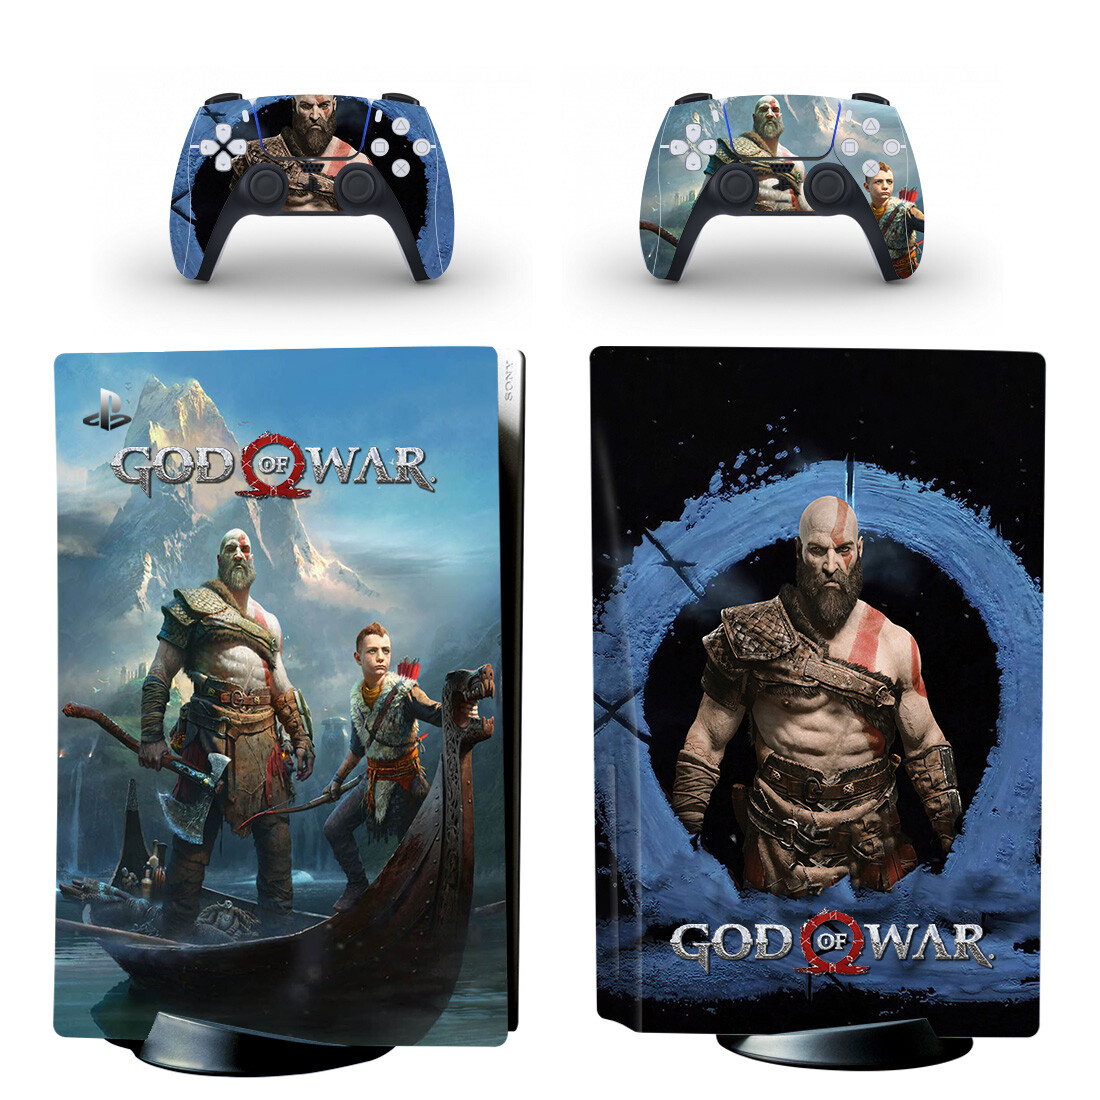 Go Of War Skin Sticker Decal For PlayStation 5